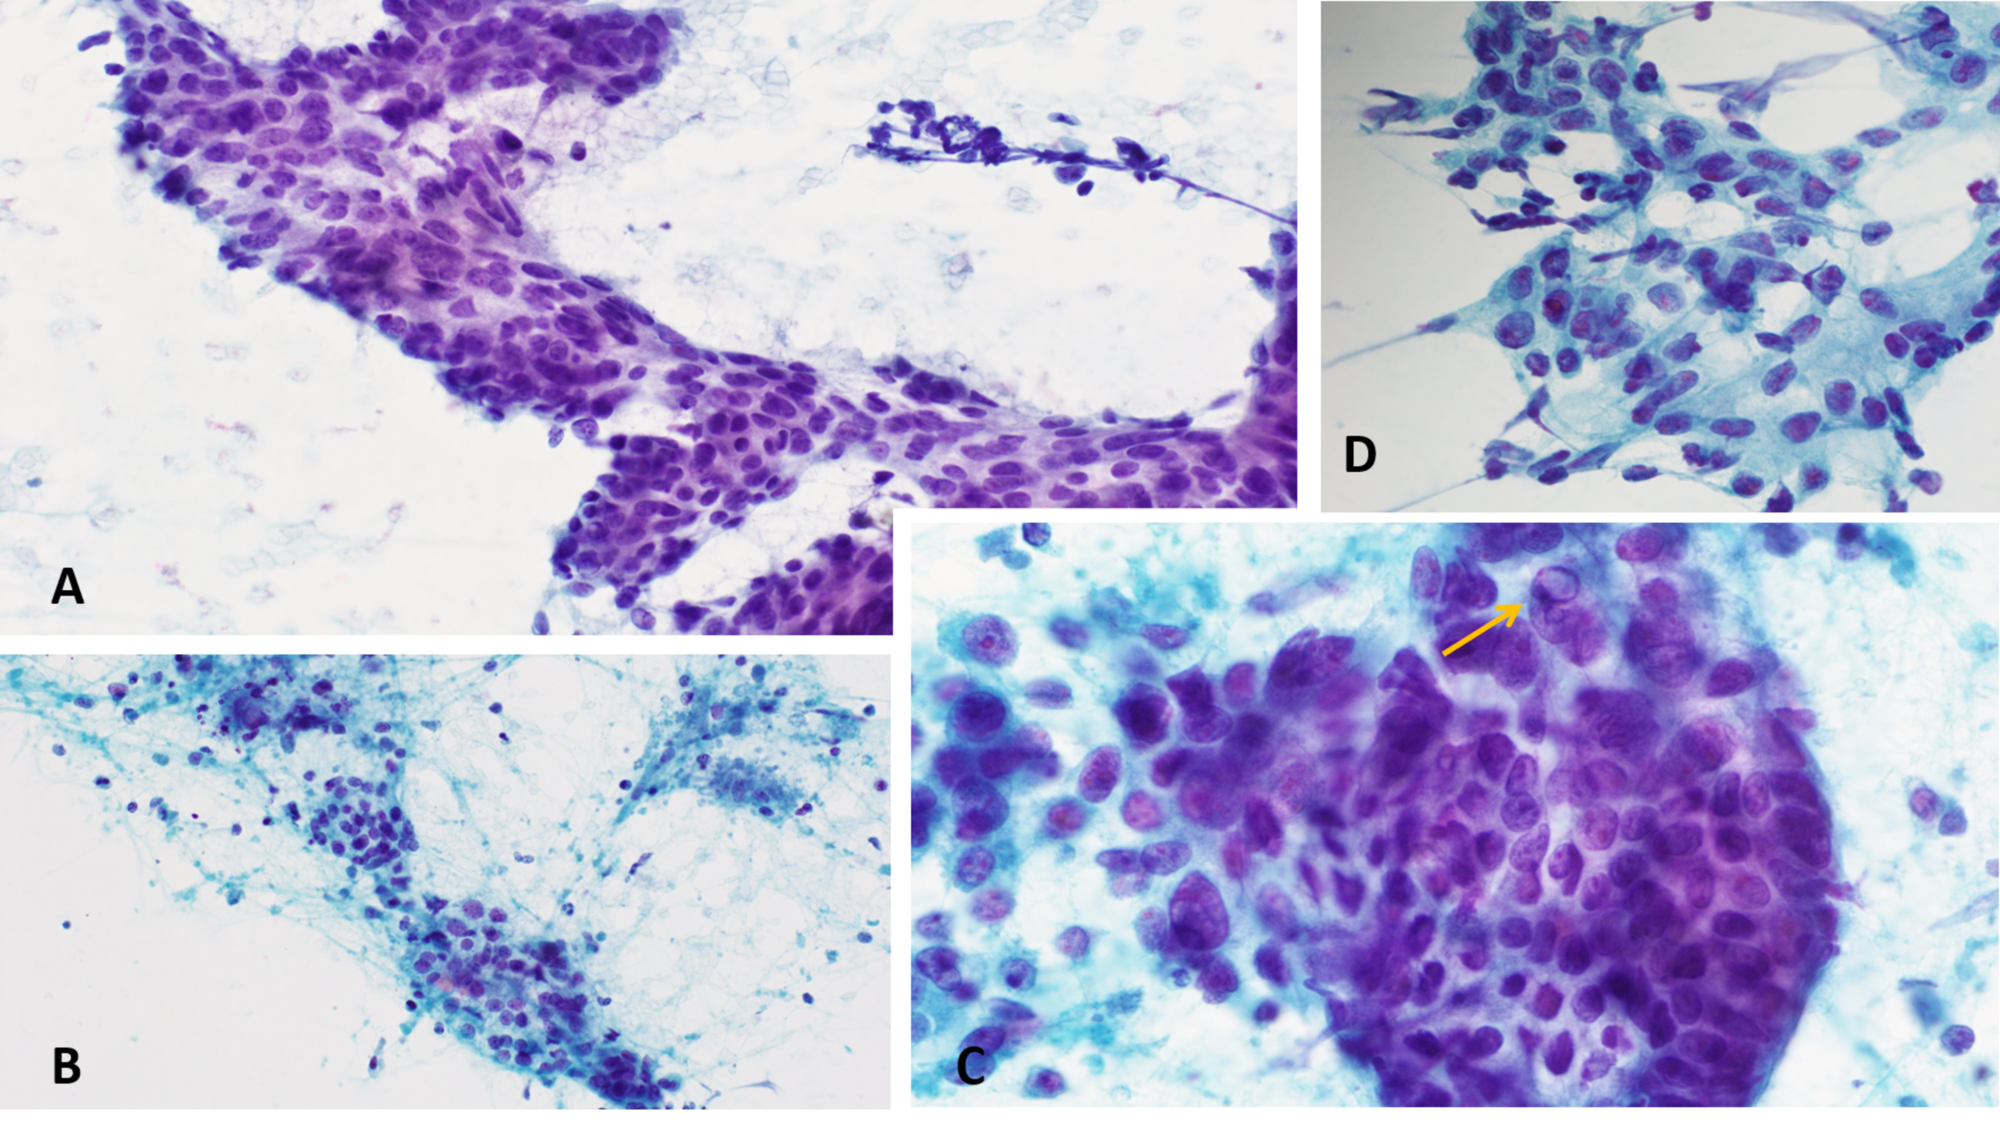 Cureus Colon Cancer Metastatic To The Thyroid Gland In The Setting Of Pathologically Diagnosed Papillary Thyroid Cancer A Review And Report Of A Case